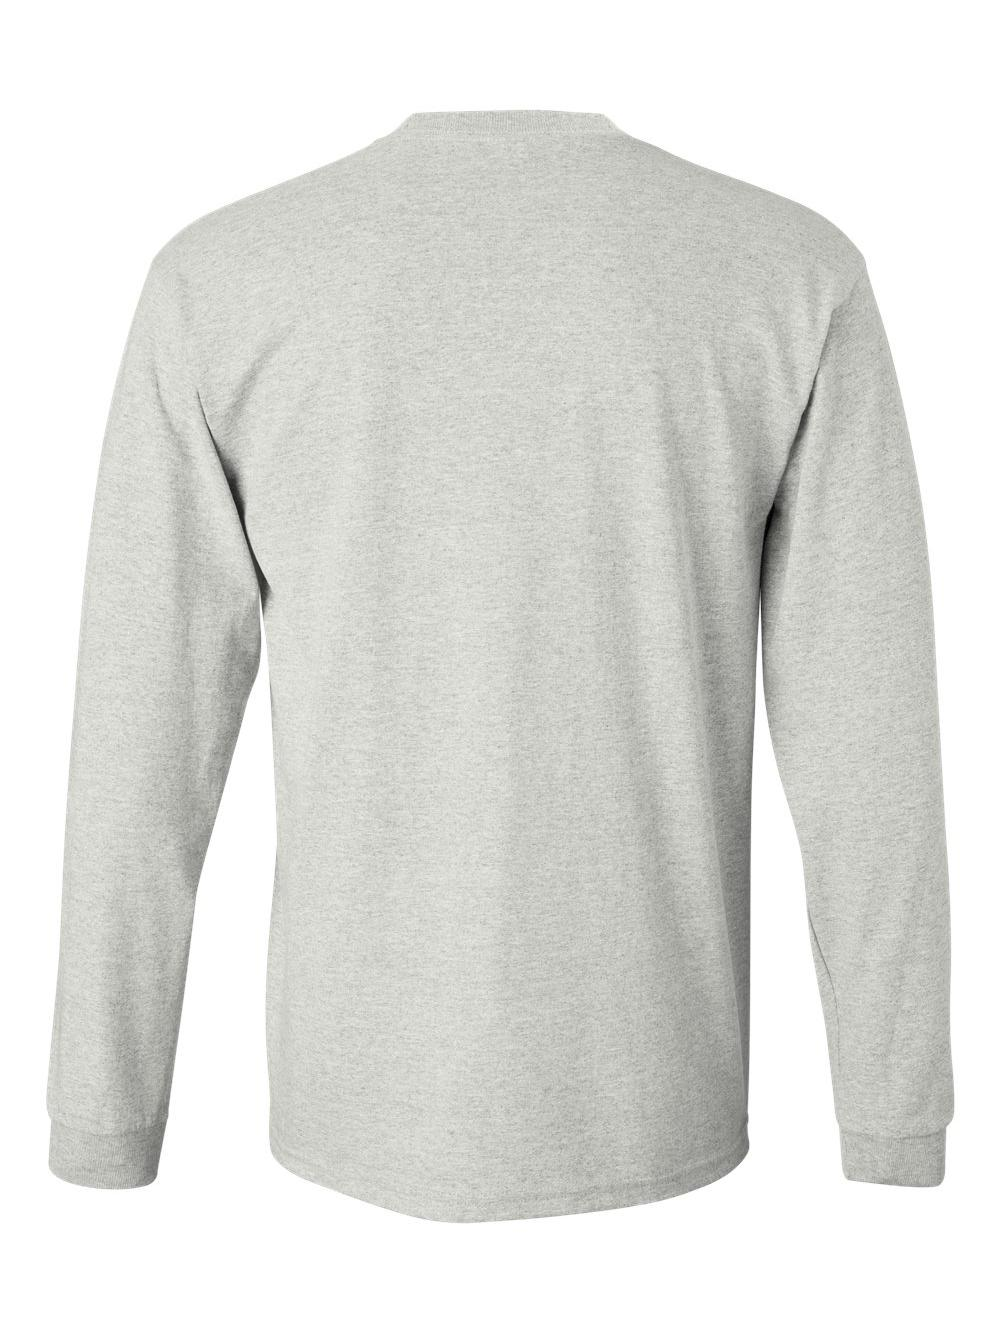 Gildan-Ultra-Cotton-Long-Sleeve-T-Shirt-2400 thumbnail 4